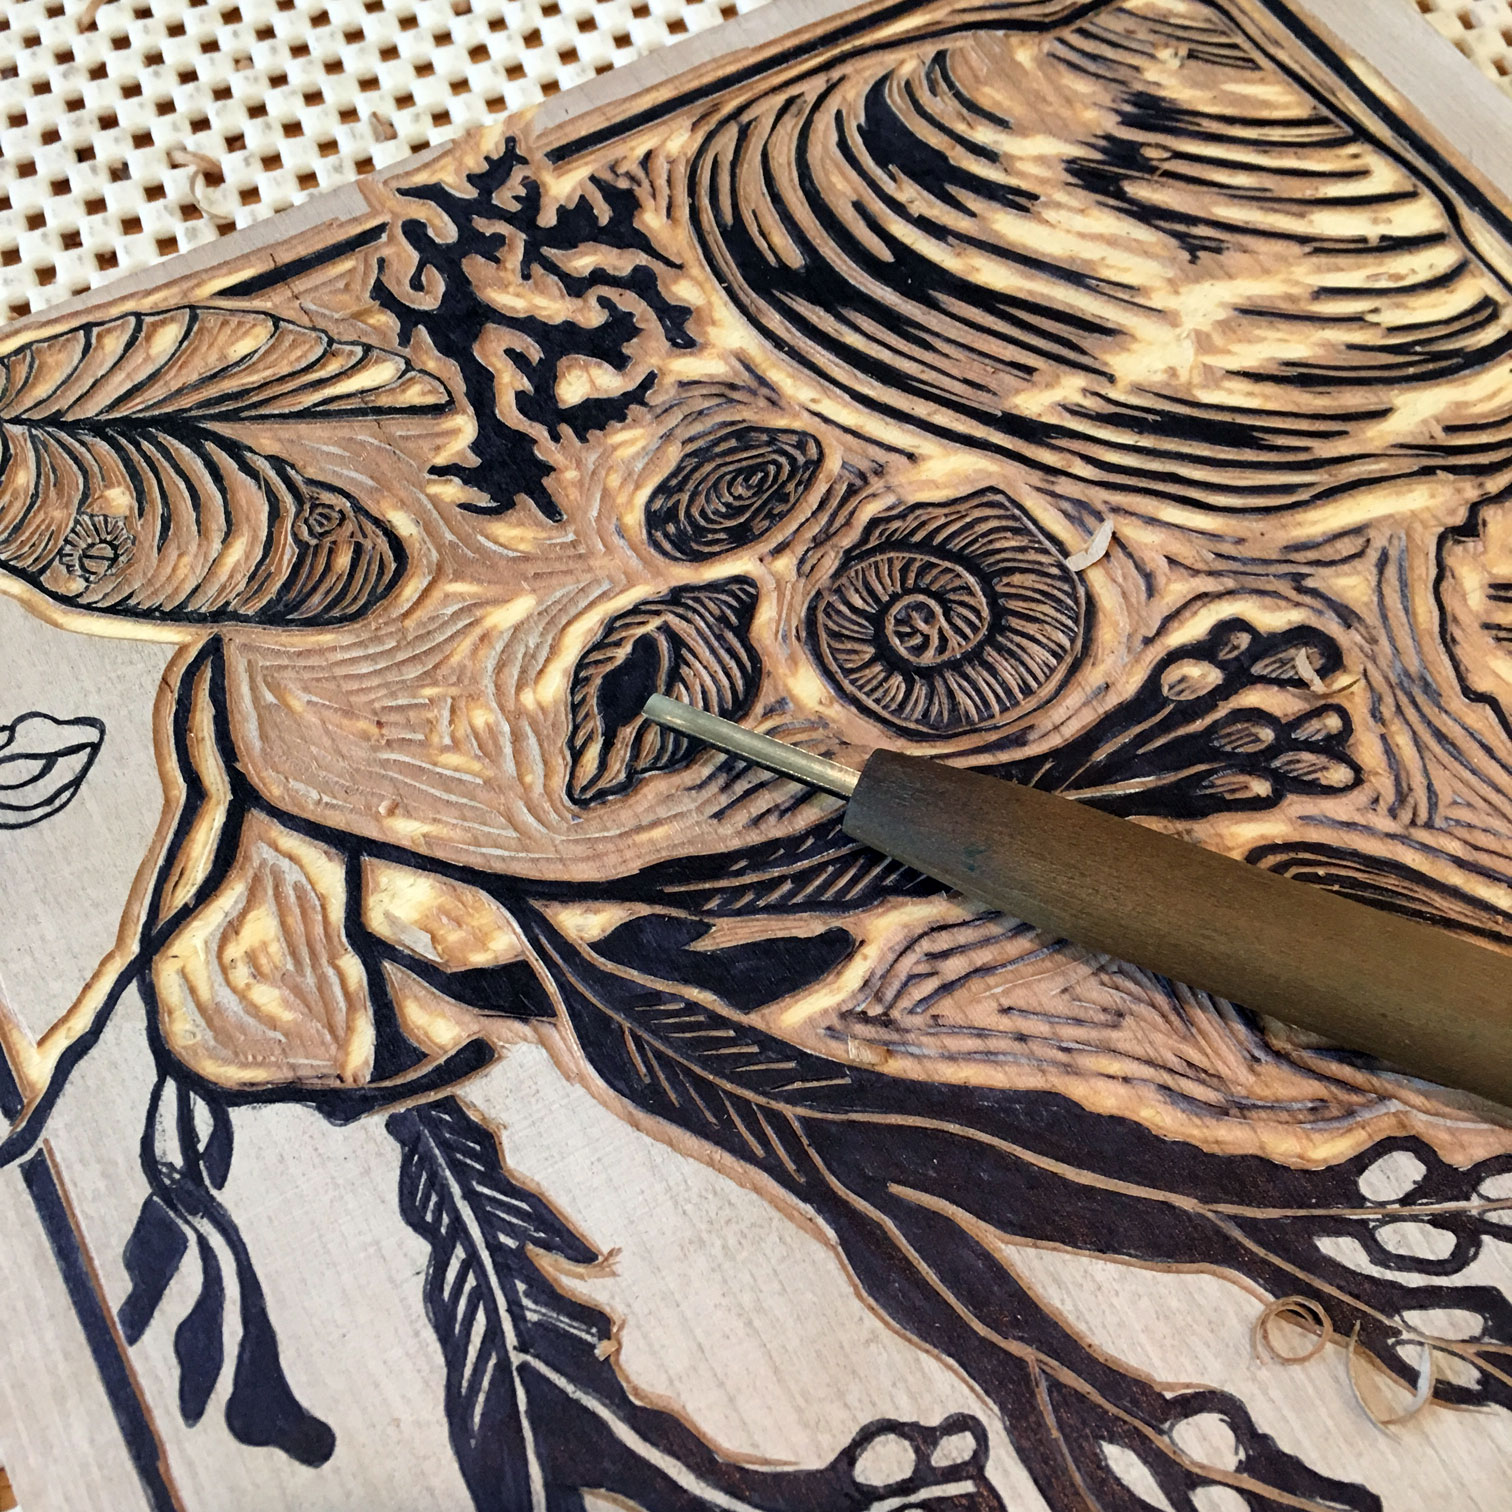 Cutting a one-color woodblock.